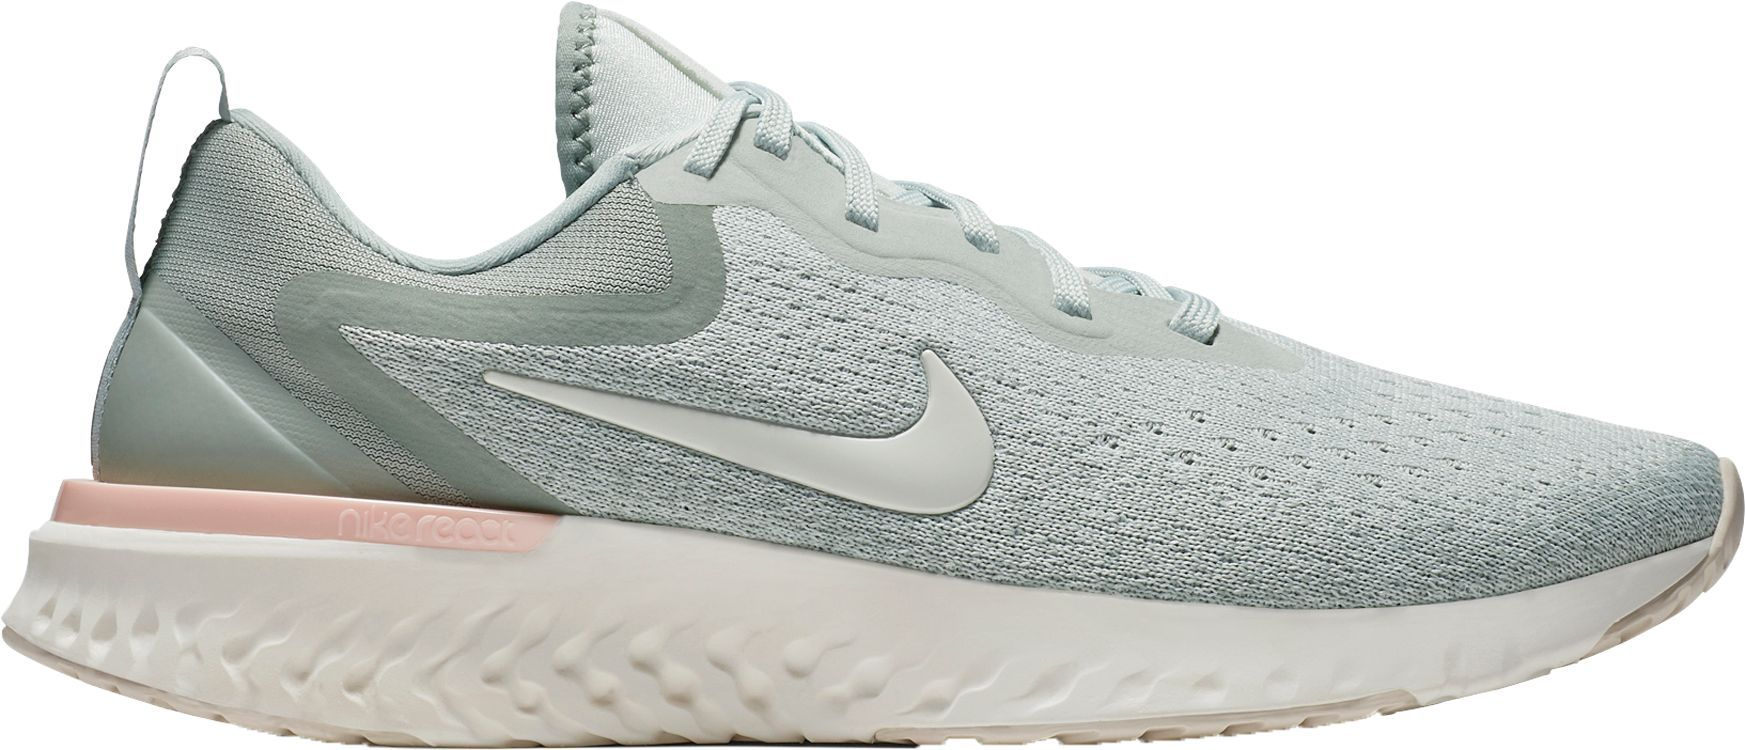 e09b88a6a0b The 8 Best Nike Walking Shoes of 2019